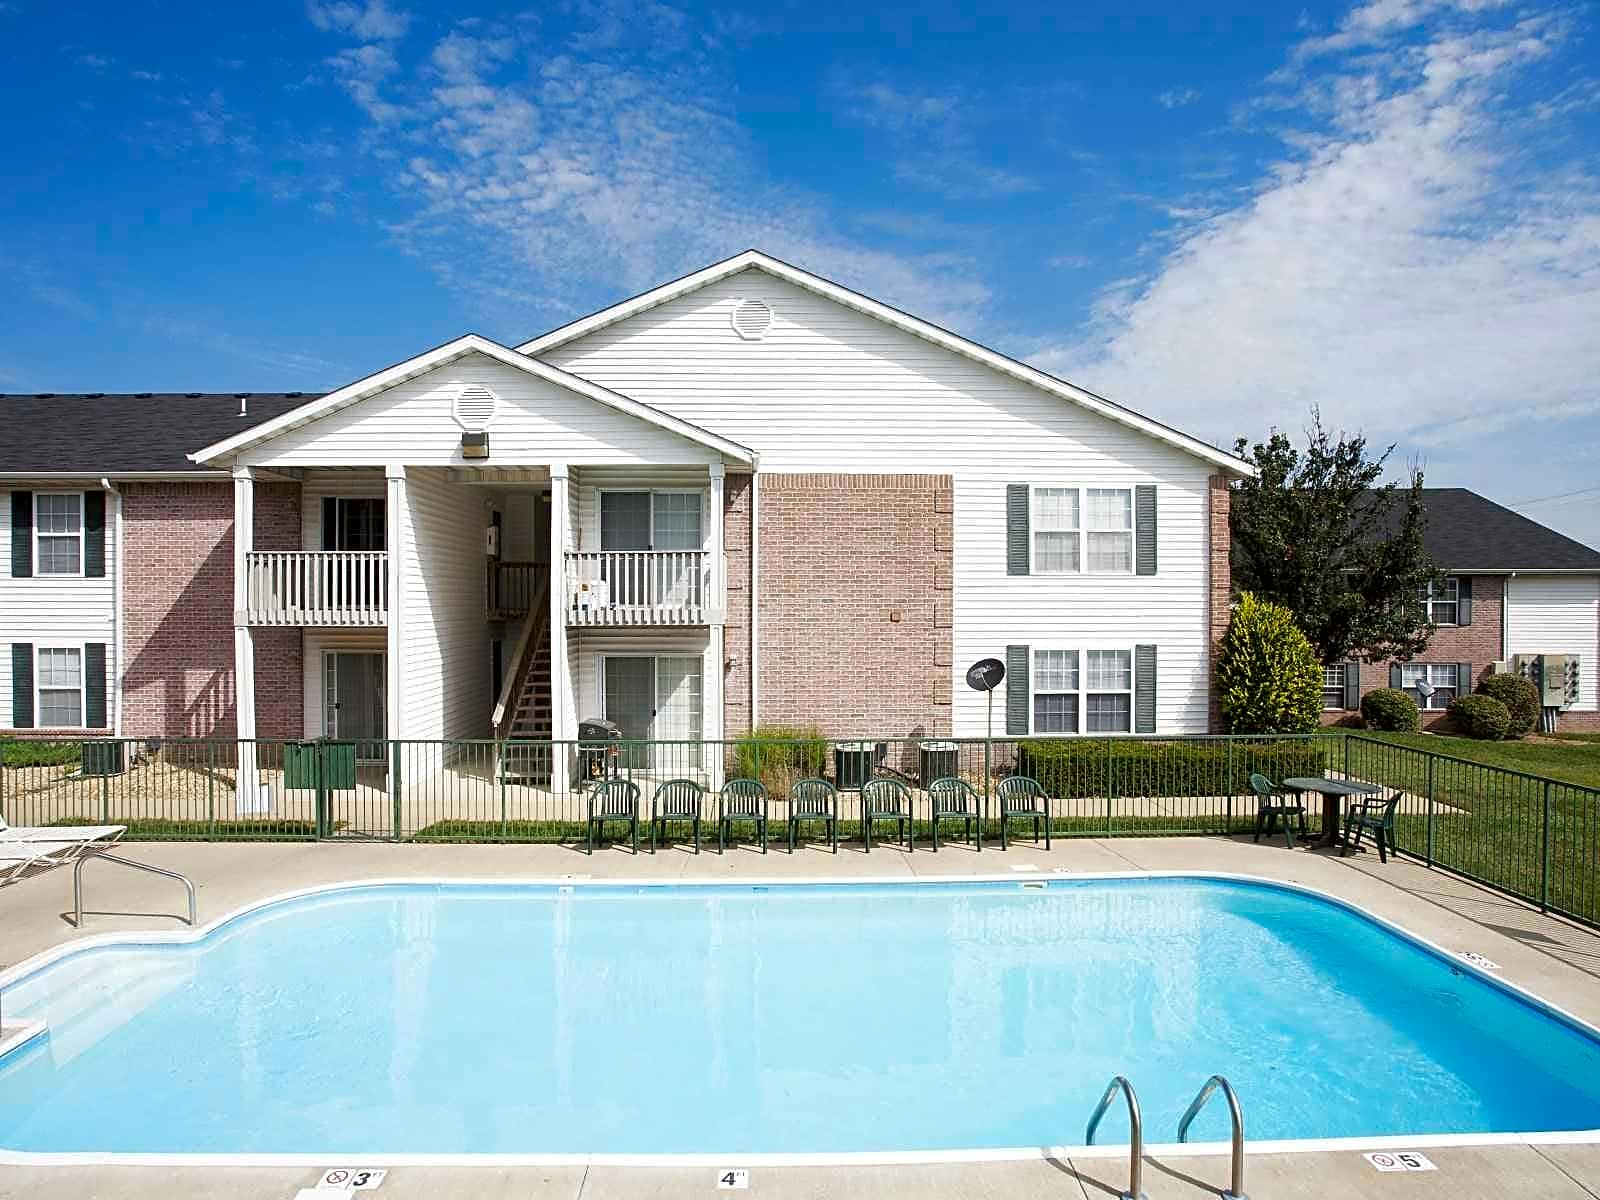 Ozark Plantation Apartments for rent in Ozark